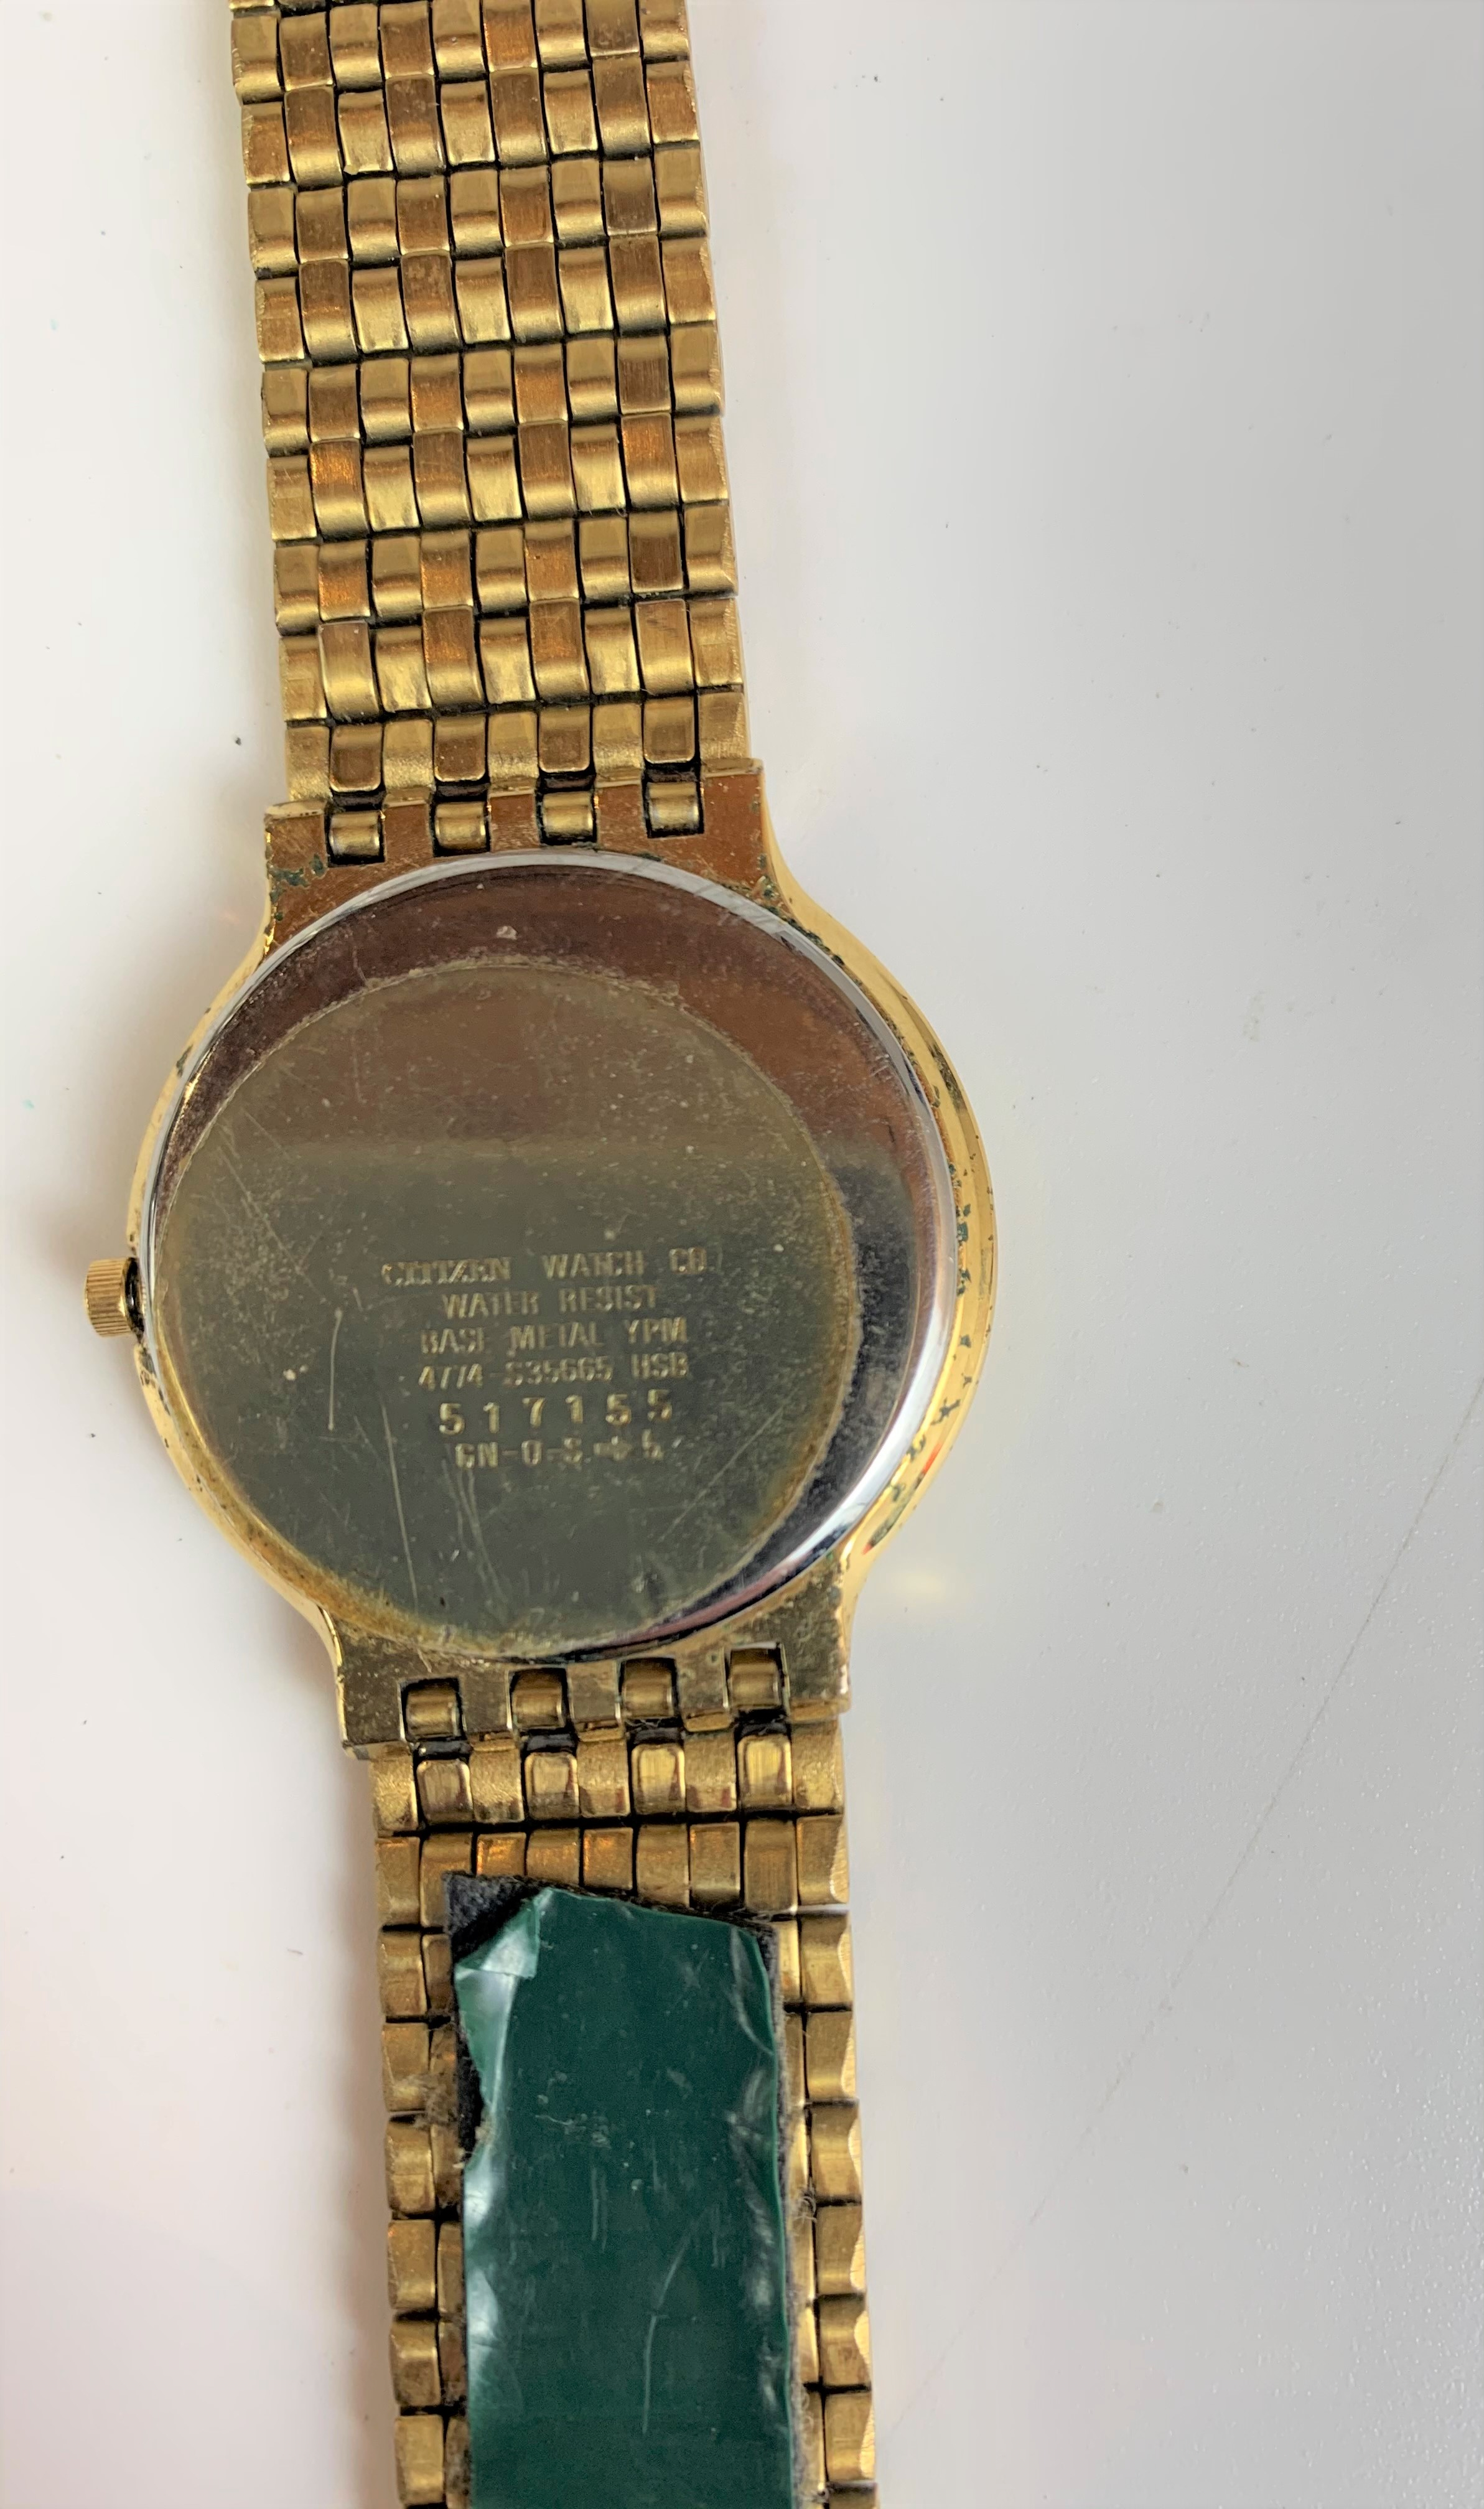 4 dress watches - Image 8 of 8